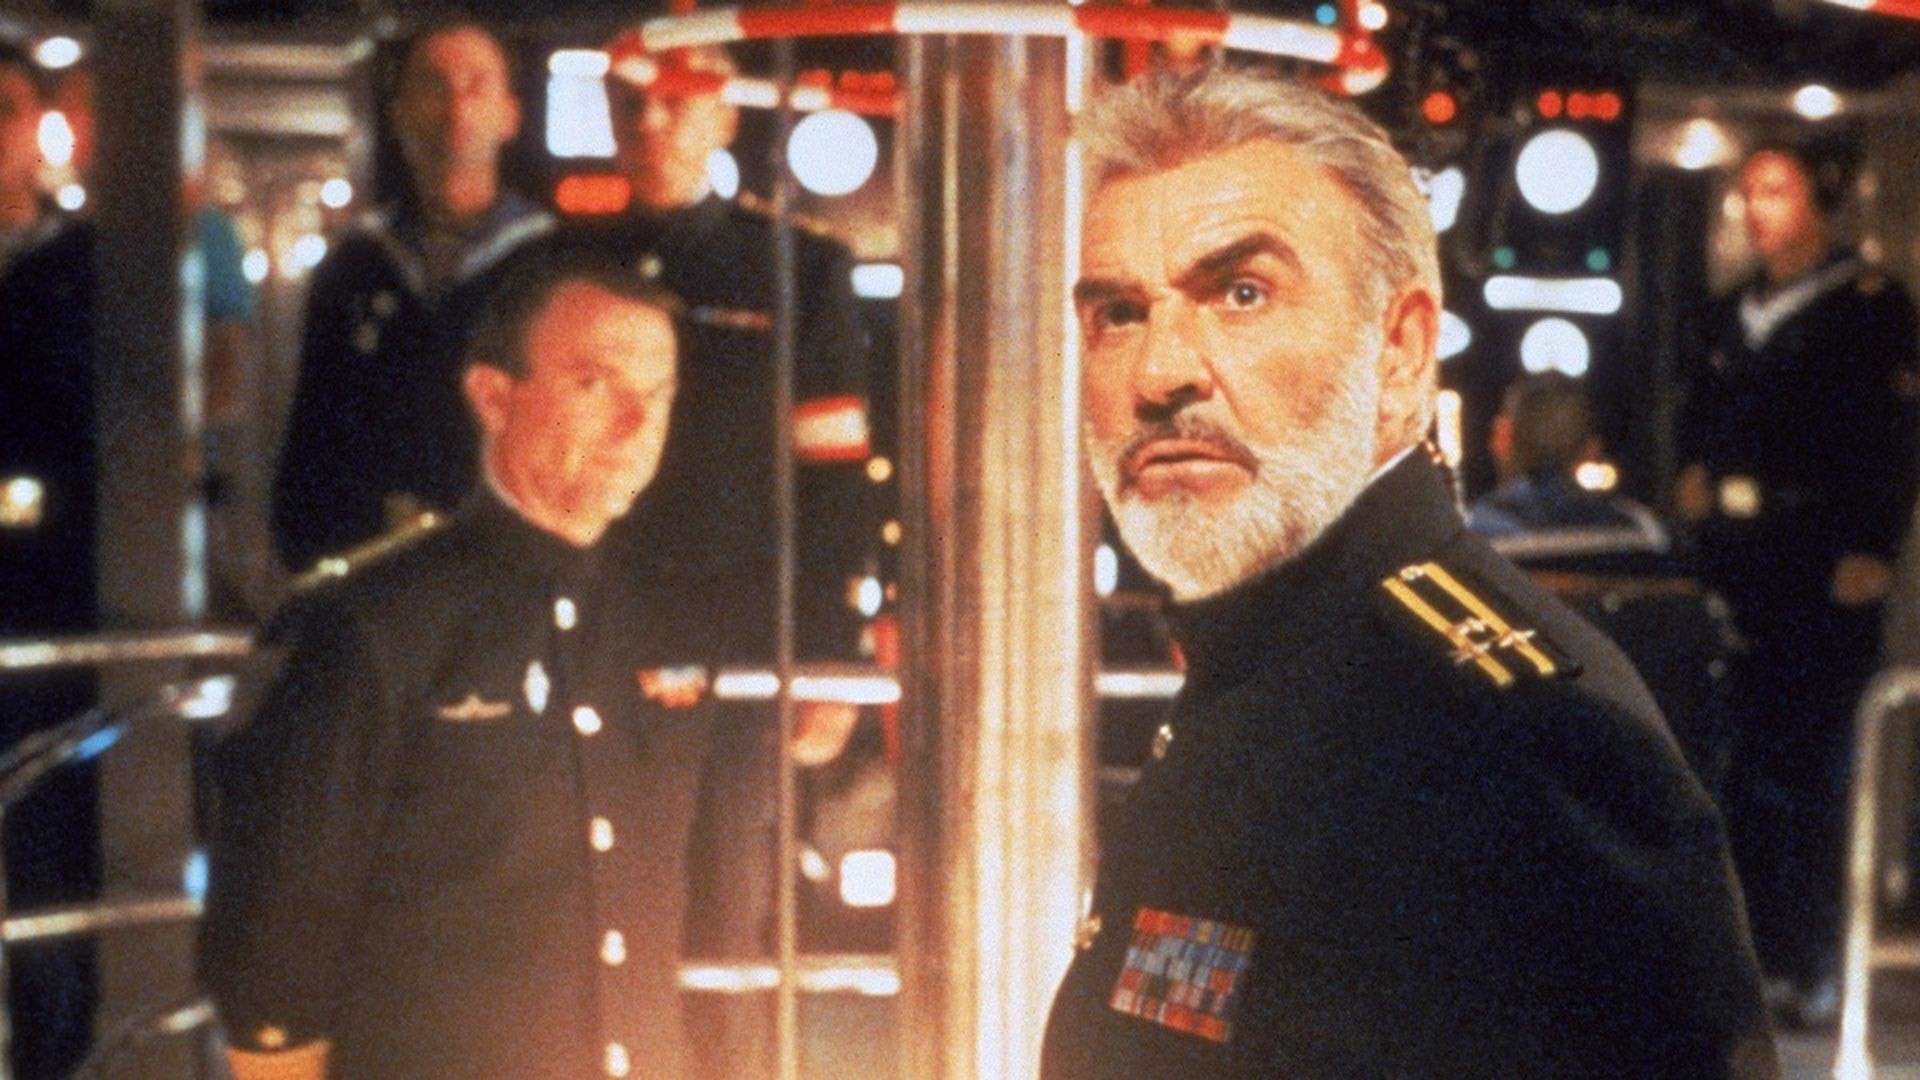 Sir Sean in 'The Hunt for Red October'